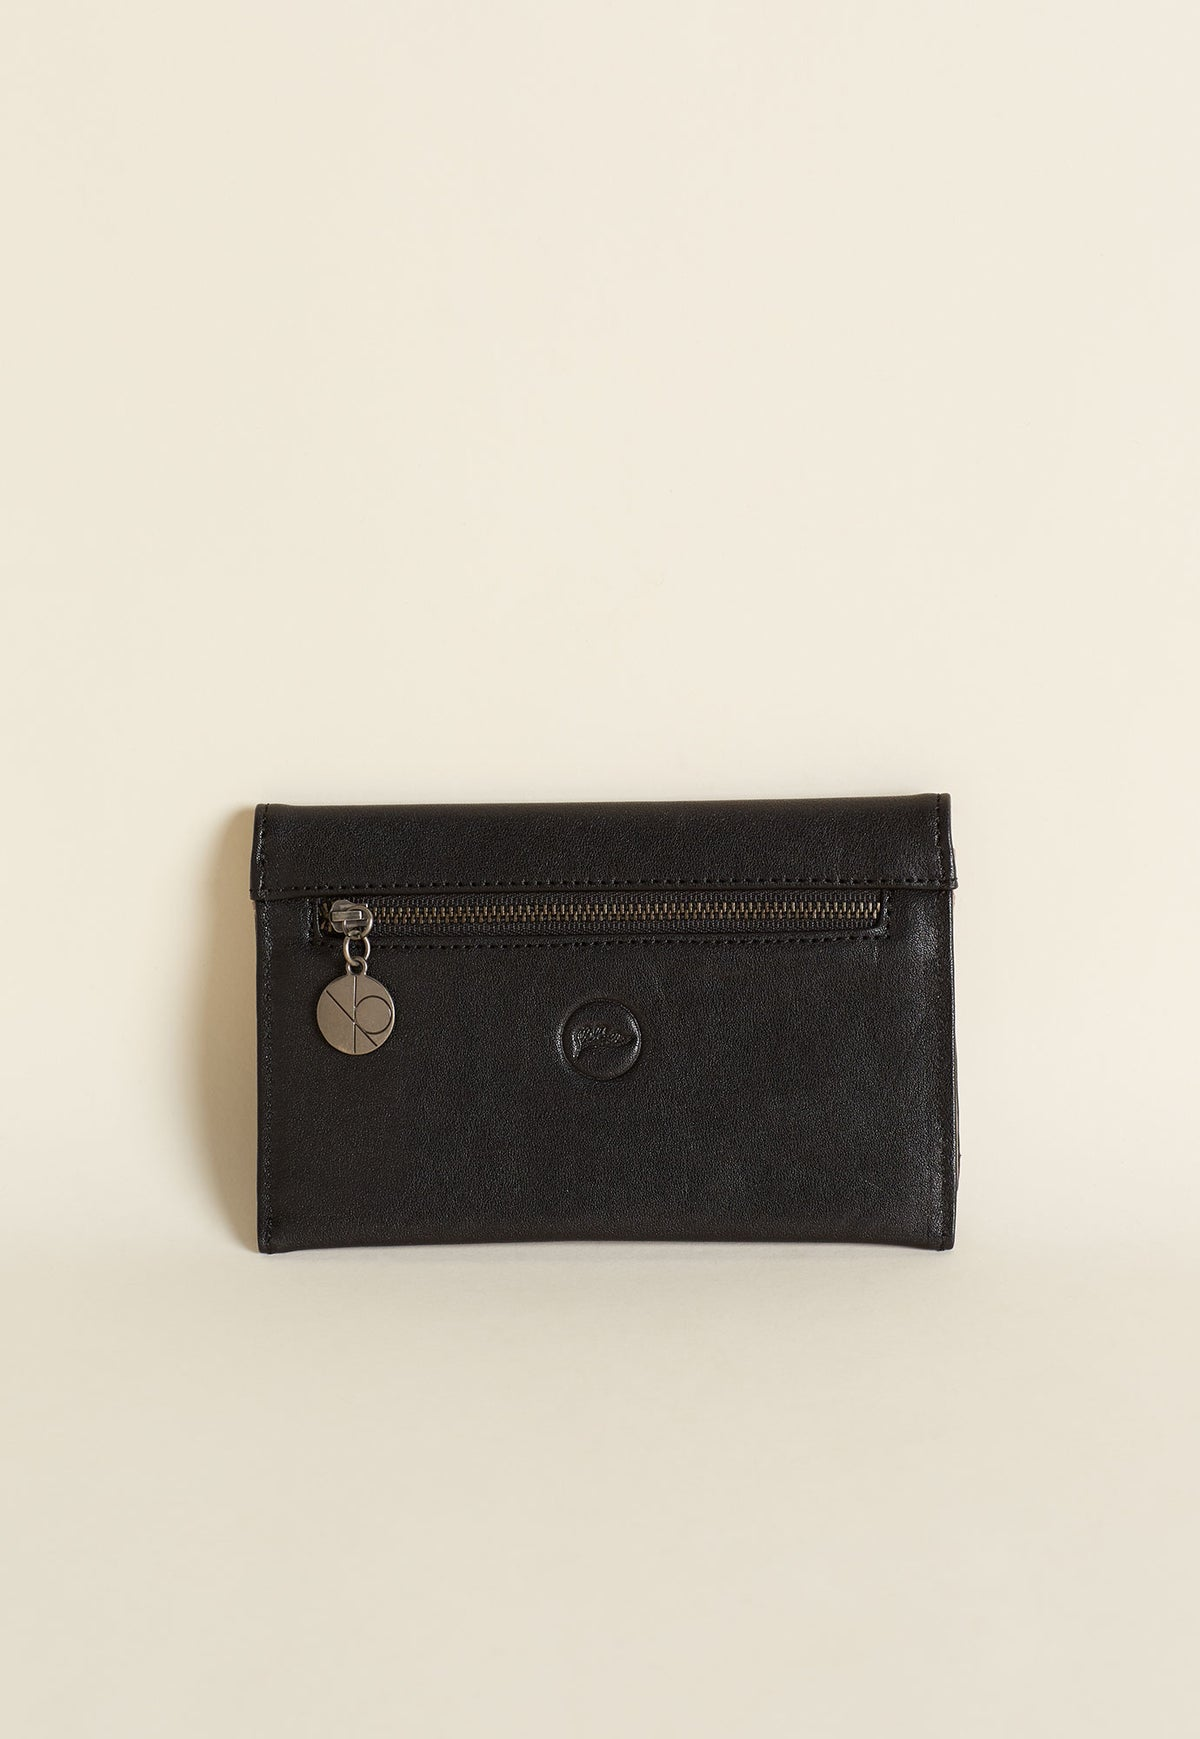 Embroidered Wallet - Black